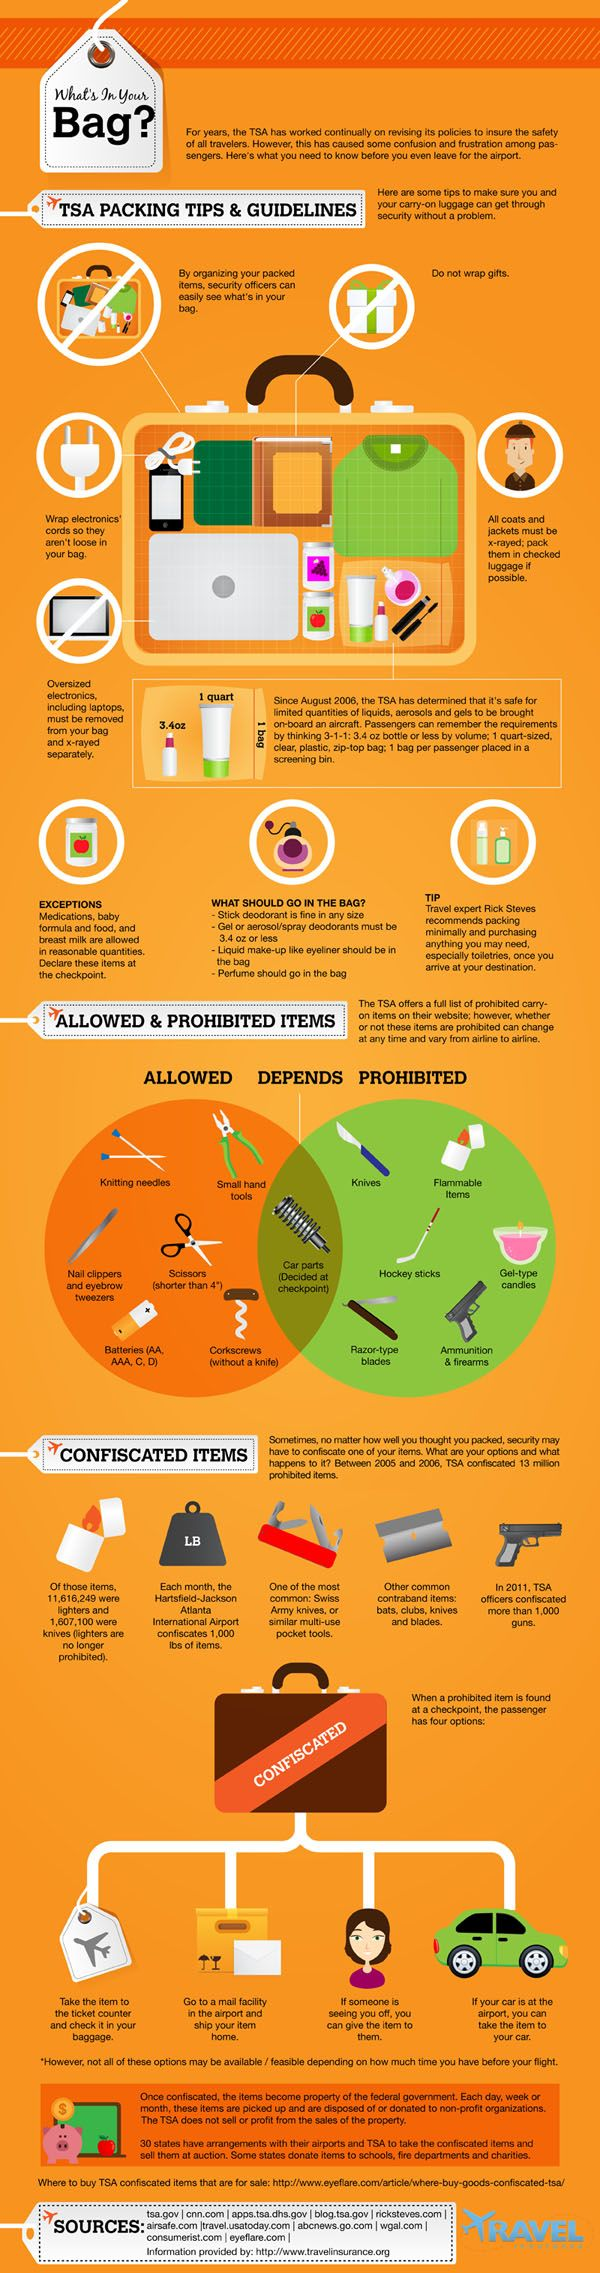 Do you want to make sure your carry-on luggage gets through the TSA security check at the airport? Check out this travel infographic on how to pass the TSA checks.